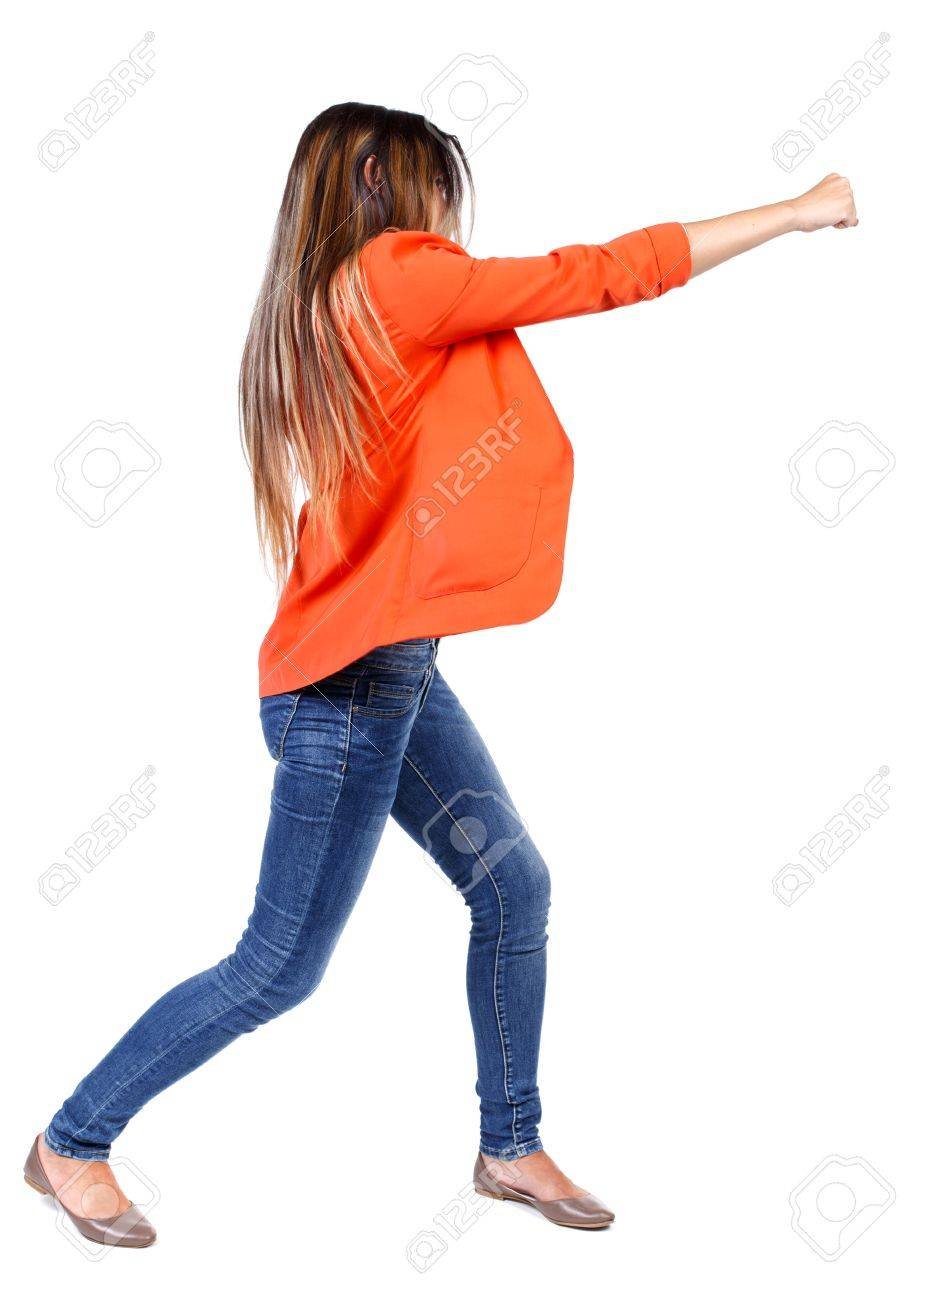 Image of: Funny Pranks Back View Of Woman Funny Fights Waving His Arms And Legs Rear View People Collection 123rfcom Back View Of Woman Funny Fights Waving His Arms And Legs Rear